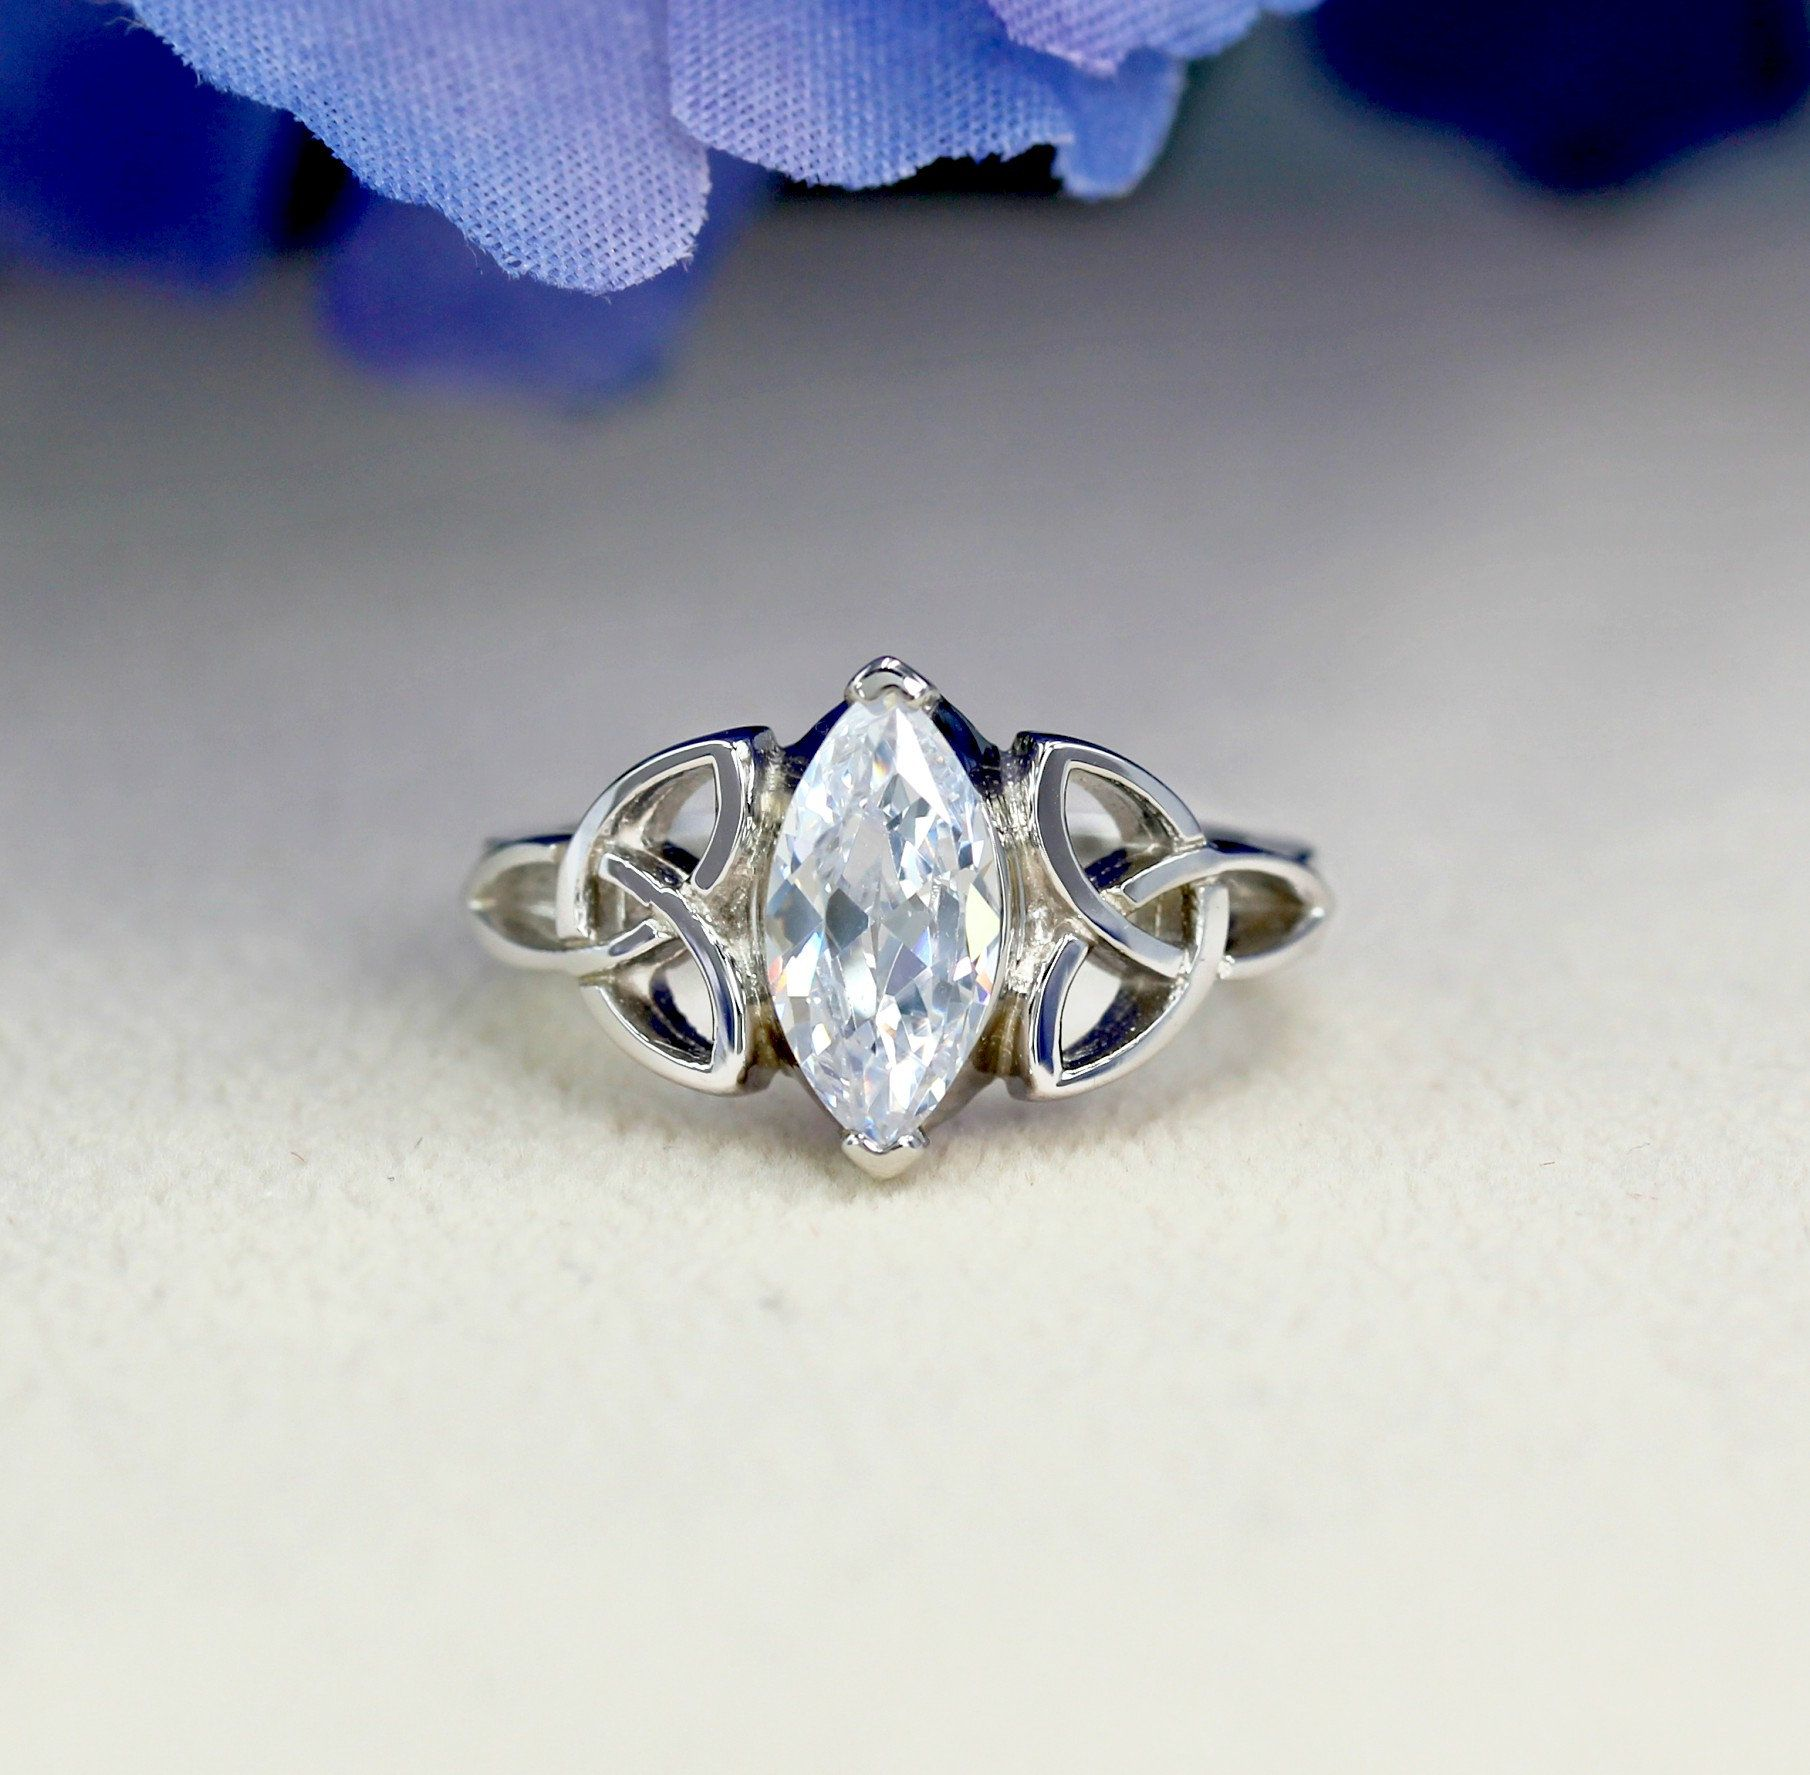 Celtic Knot 1.5ct.Marquise Diamond Simulant Sterling